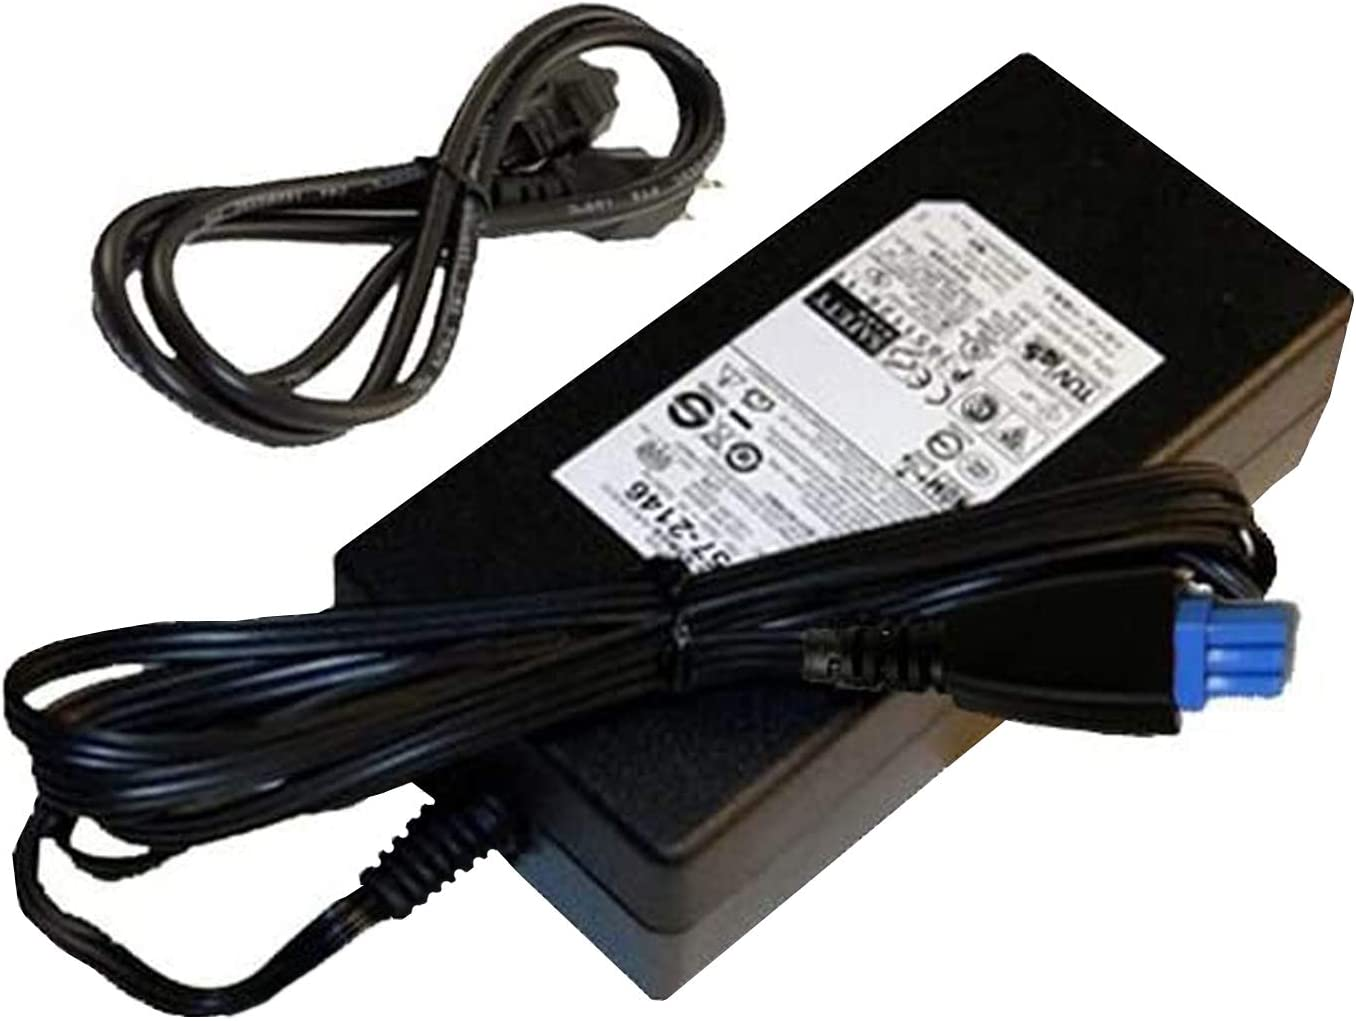 GENUINE HP AC Power Supply Adapter For Hp OfficeJet Pro L7550, L7580, L7590, L7600, L7650, L7680, L7700, L7750, L7780 Printers with Required AC Power Cord Bundle